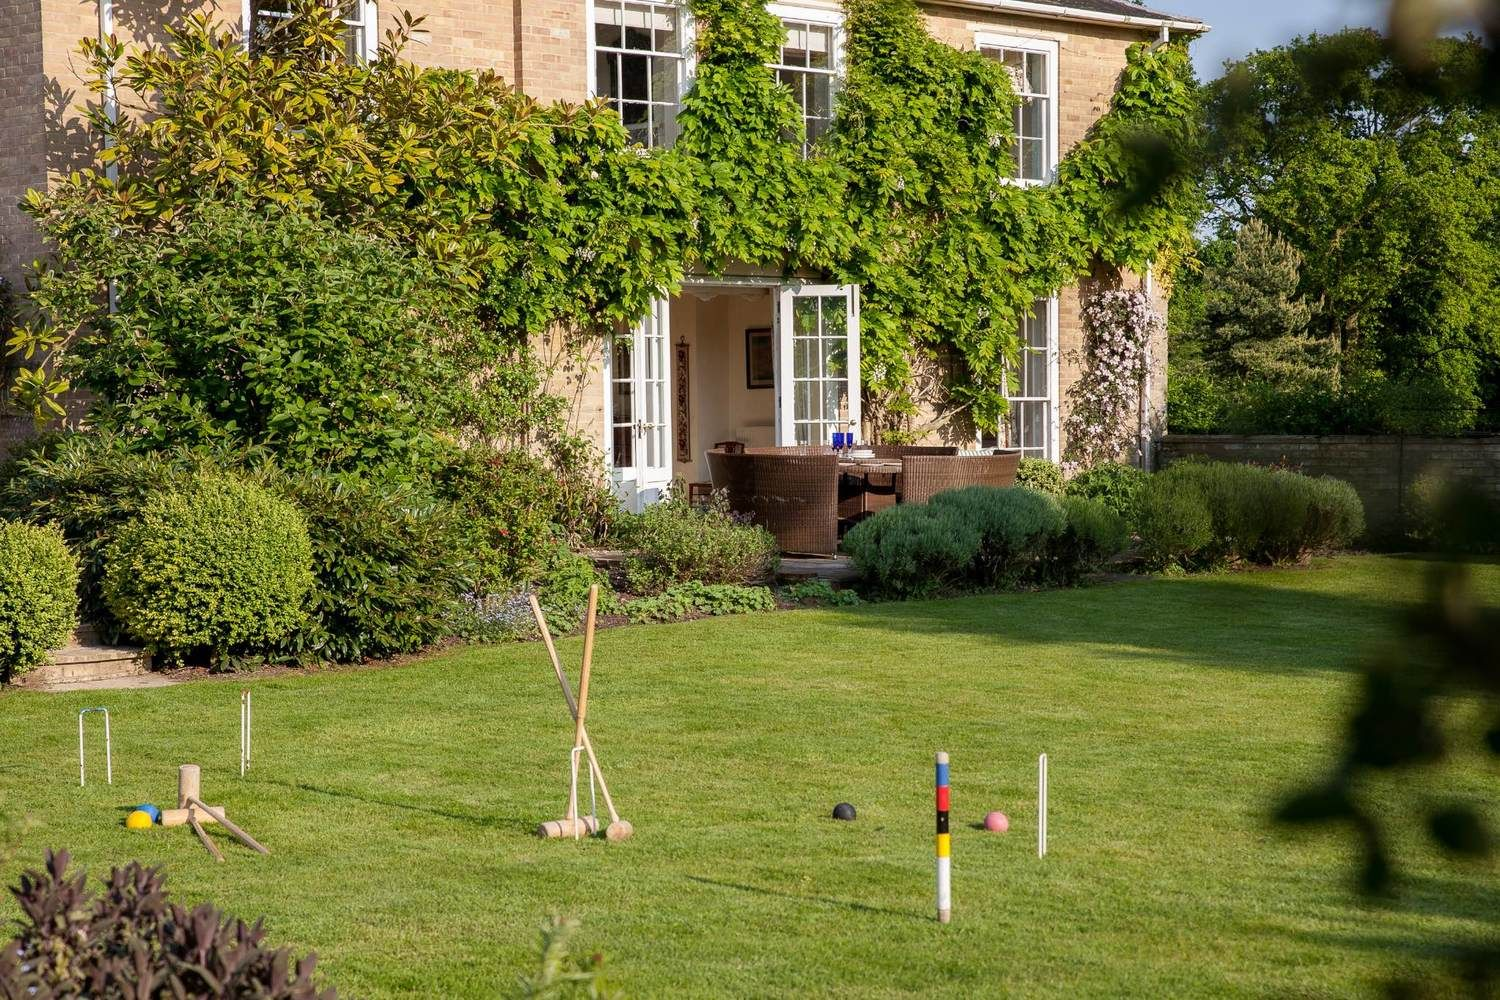 Play croquet in the Walled Garden